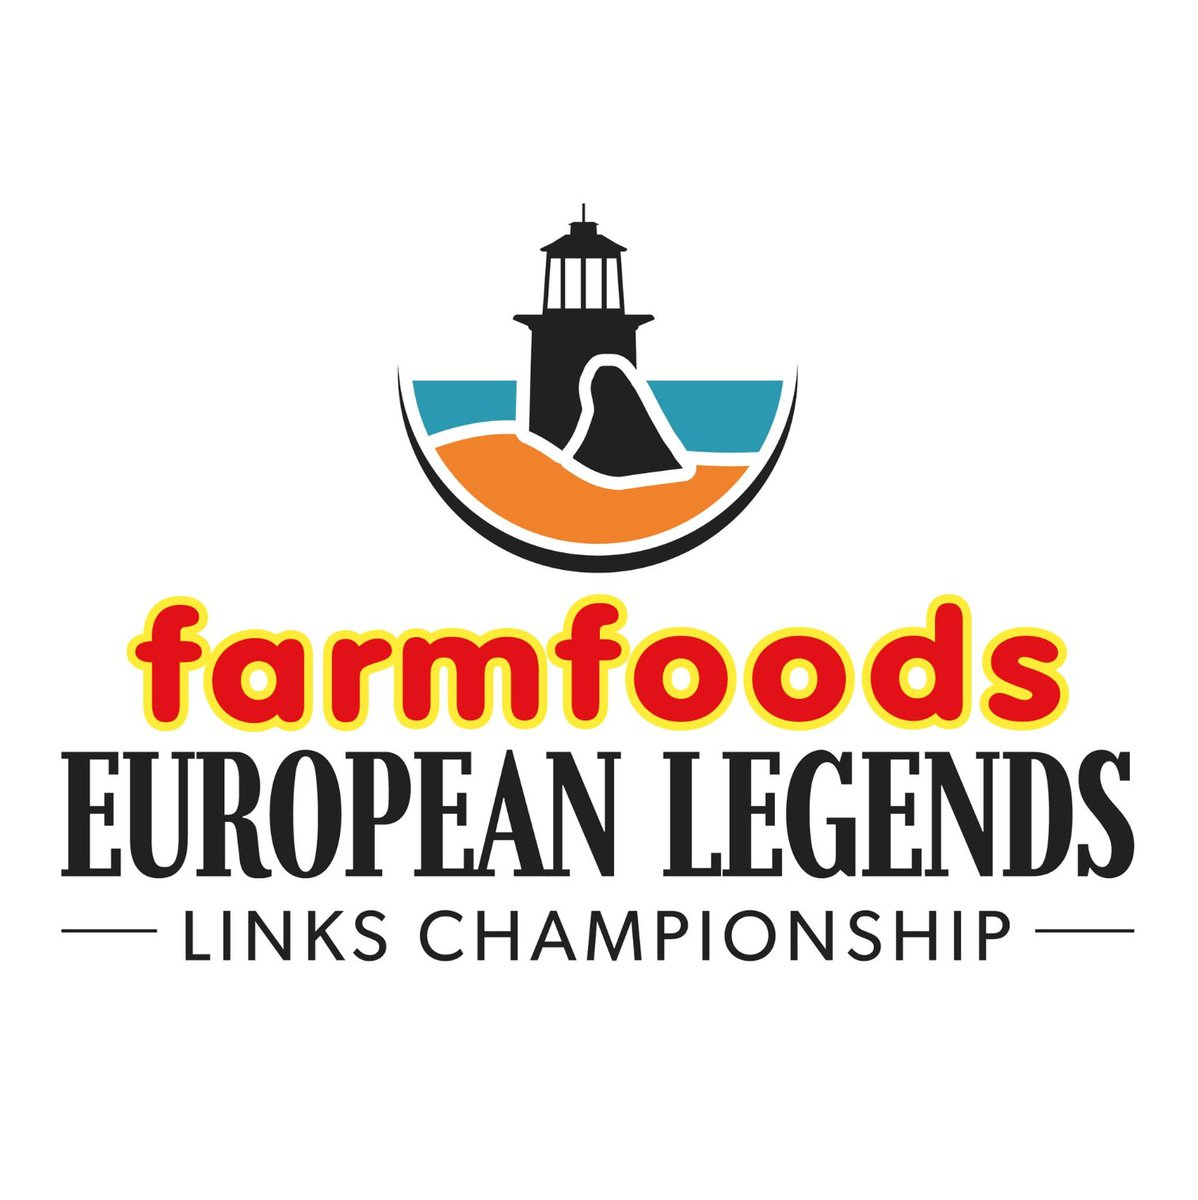 Important announcement. Farmfoods European Legends Links Championship 2020 rescheduled to the 17-20th June 2021. Please visit the website for more information. bit.ly/35GUXMr